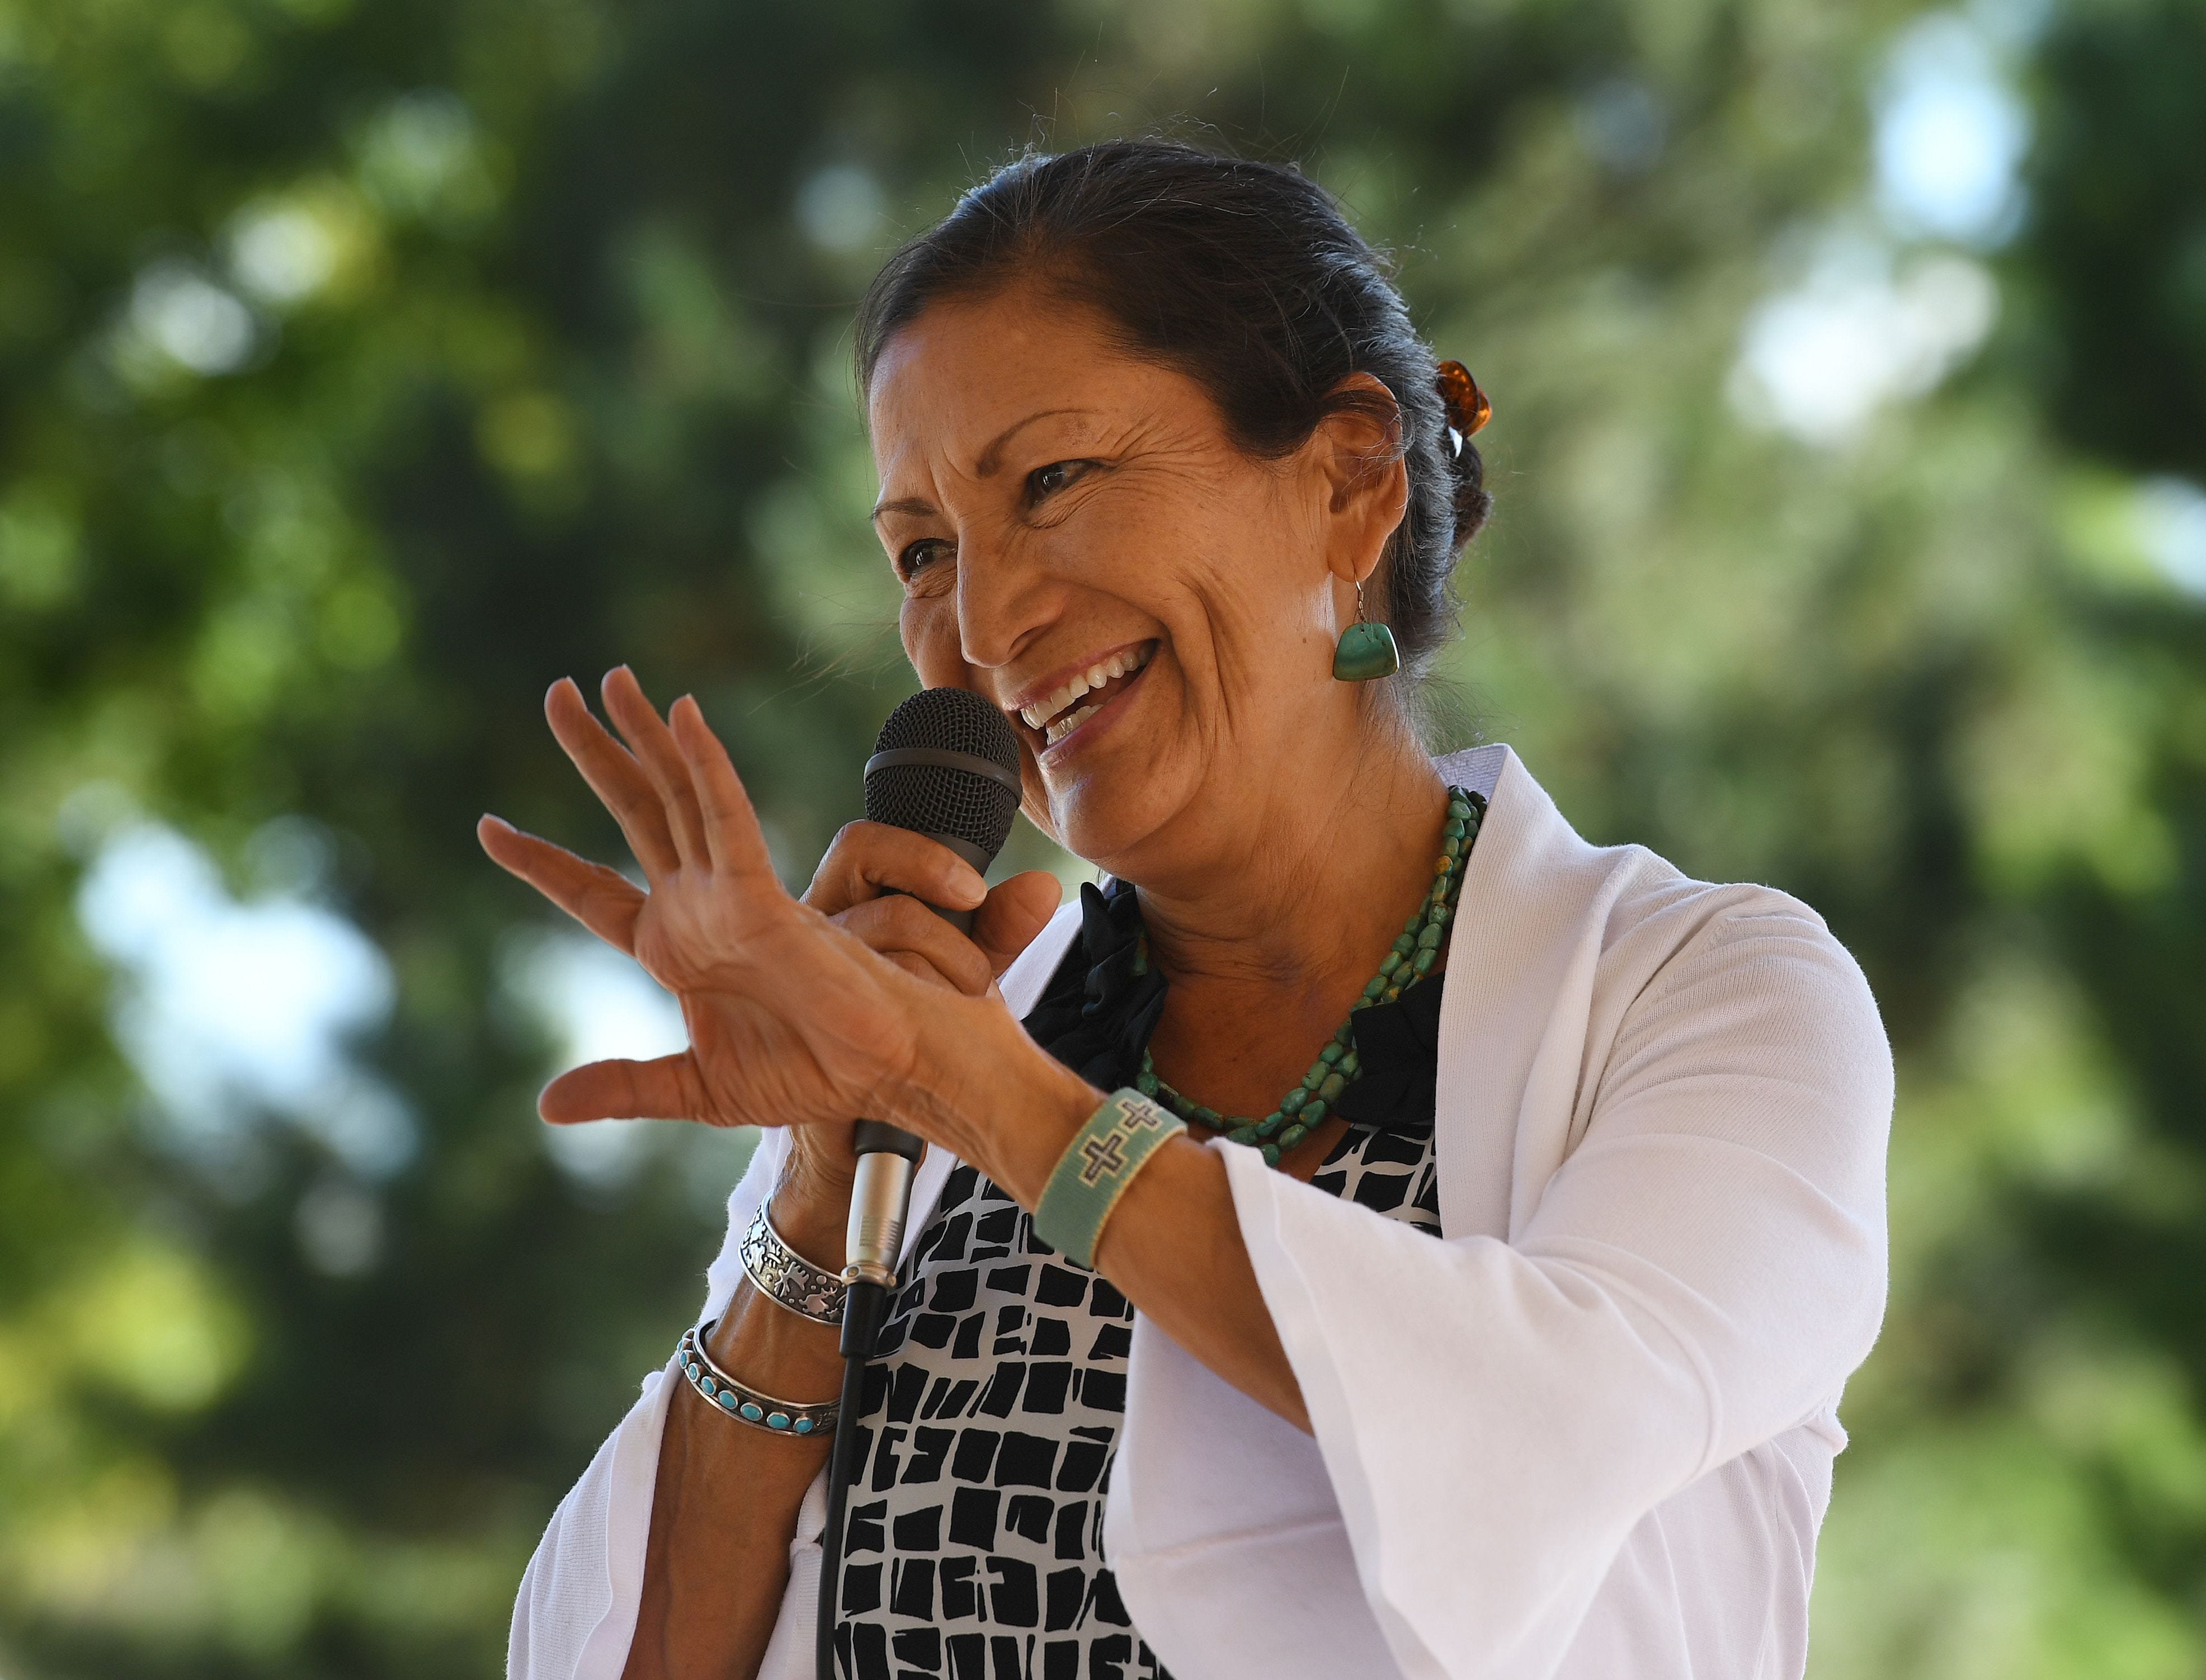 In this file photo taken on Sept. 30, 2018 Native American candidate Deb Haaland who is running for Congress in New Mexico's 1st congressional district seat for the upcoming midterm elections, speaks in Albuquerque, New Mexico. Democrat candidates Sharice Davids and Deb Haaland broke new ground on November 6, 2018, becoming the first Native American women elected to Congress, US networks projected. Haaland, 57, of New Mexico, beat Janice Arnold-Jones, a Republican, and Lloyd Princeton, a Libertarian.